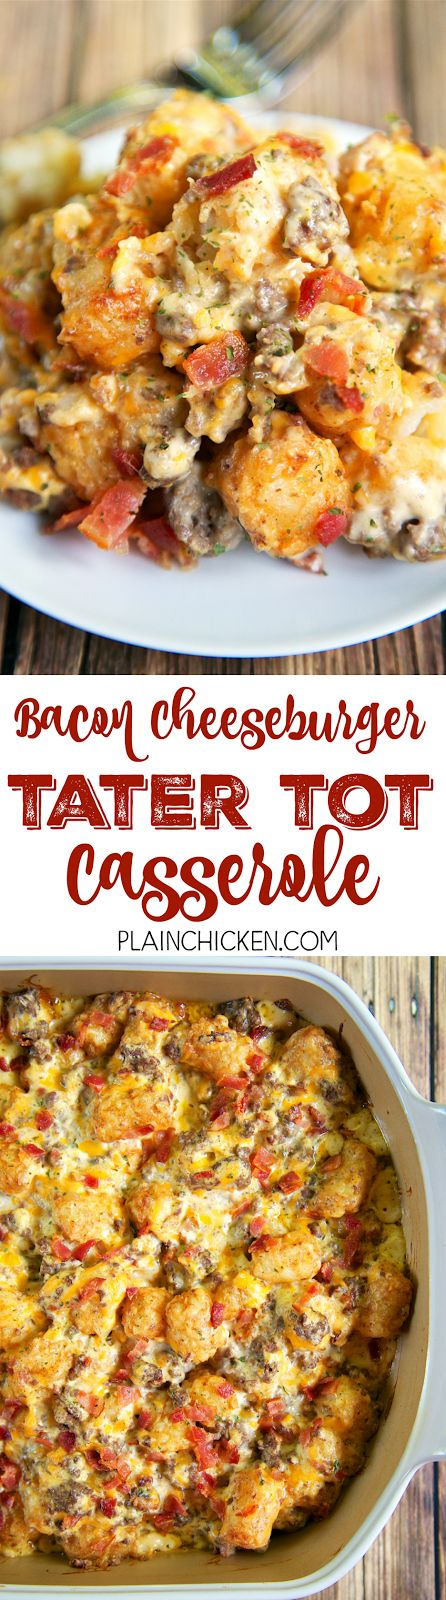 Bacon Cheeseburger Tater Tot Casserole - hamburger, bacon, cheese, cheese soup, sour cream and tater tots - what's not to love? We ate this twice in one day! Can be made ahead of time and refrigerated or frozen for later. You can also divide it between two 8x8-inch foil pans and freeze one. Great for a potluck and tailgating this fall!